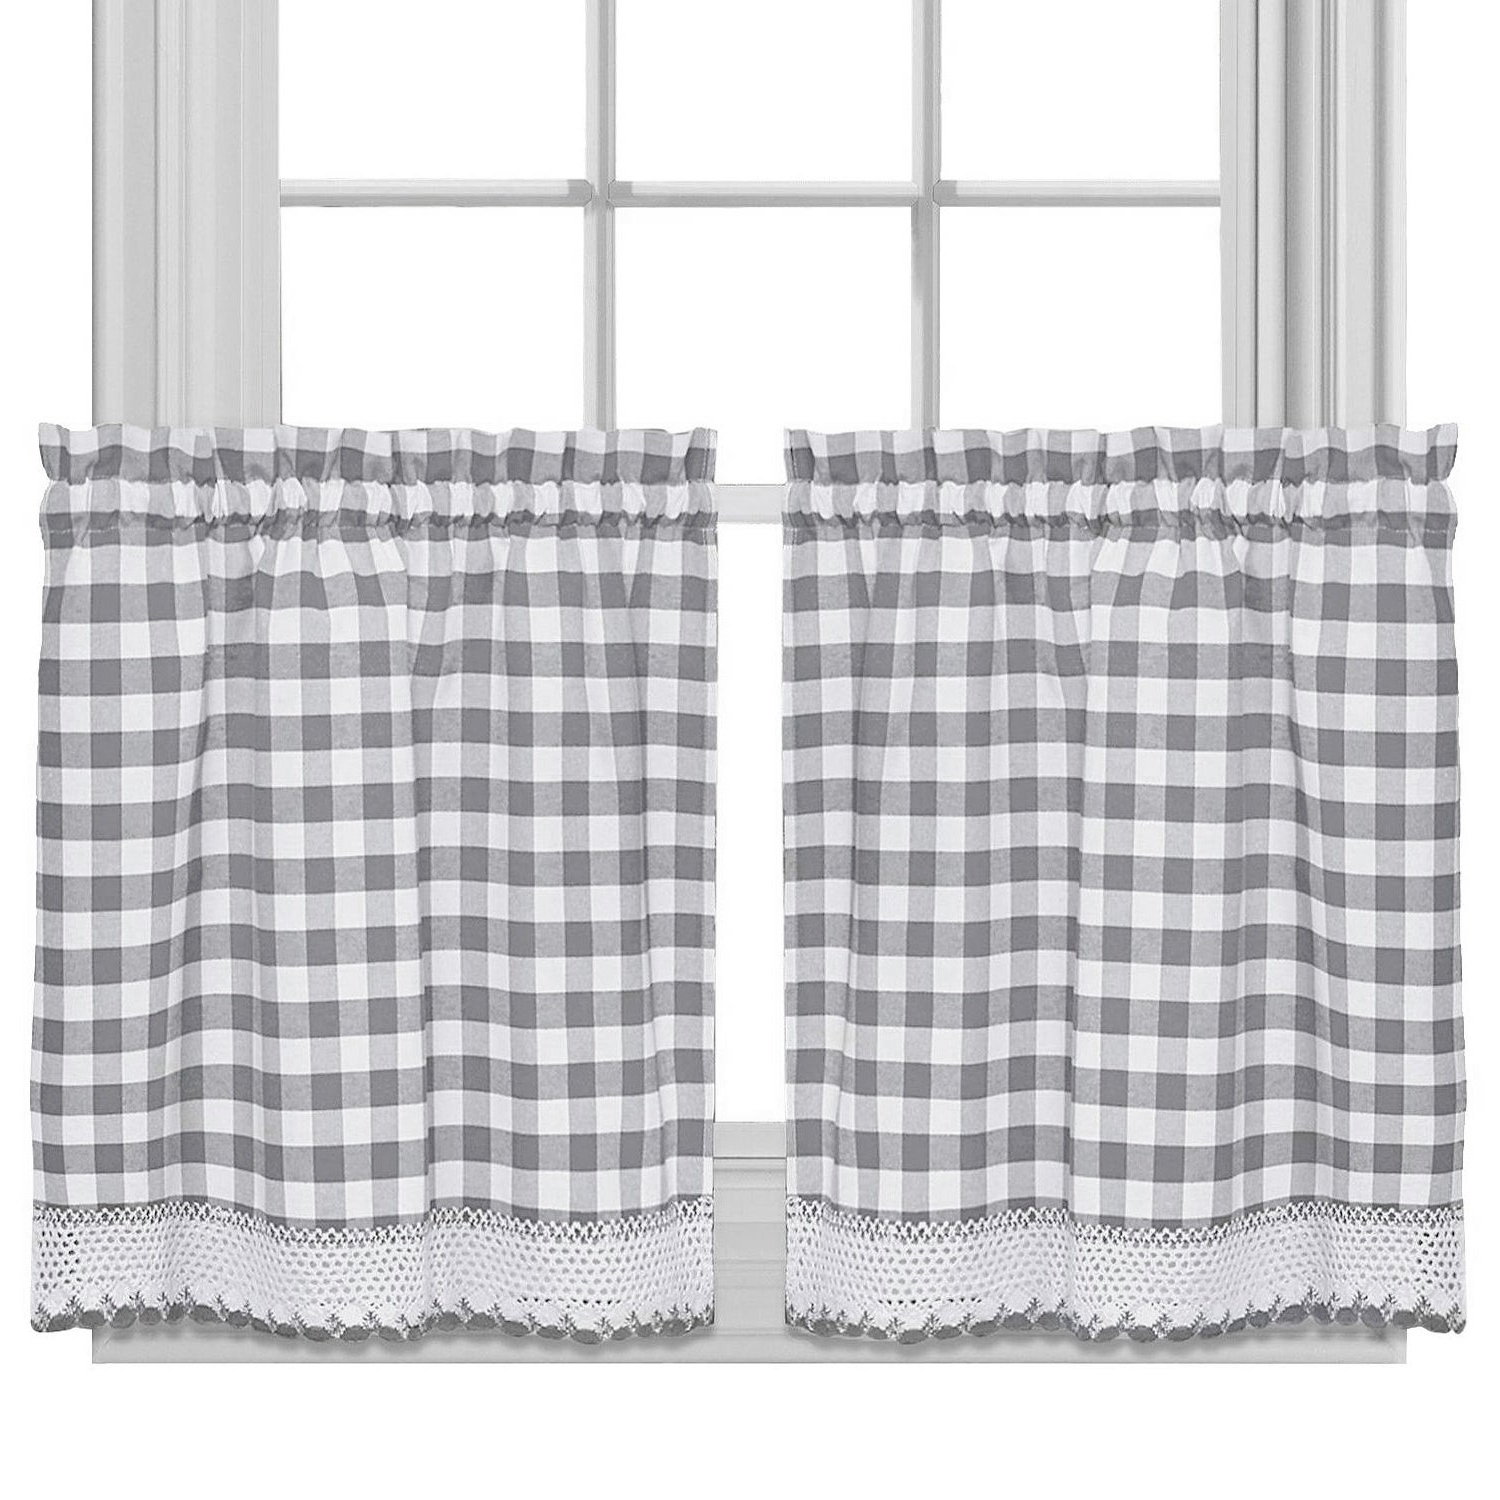 2020 Cumberland Tier Pair Rod Pocket Cotton Buffalo Check Kitchen Curtains In Buffalo Check Cotton Blend Grey Kitchen Curtain Tier Pair (View 8 of 20)